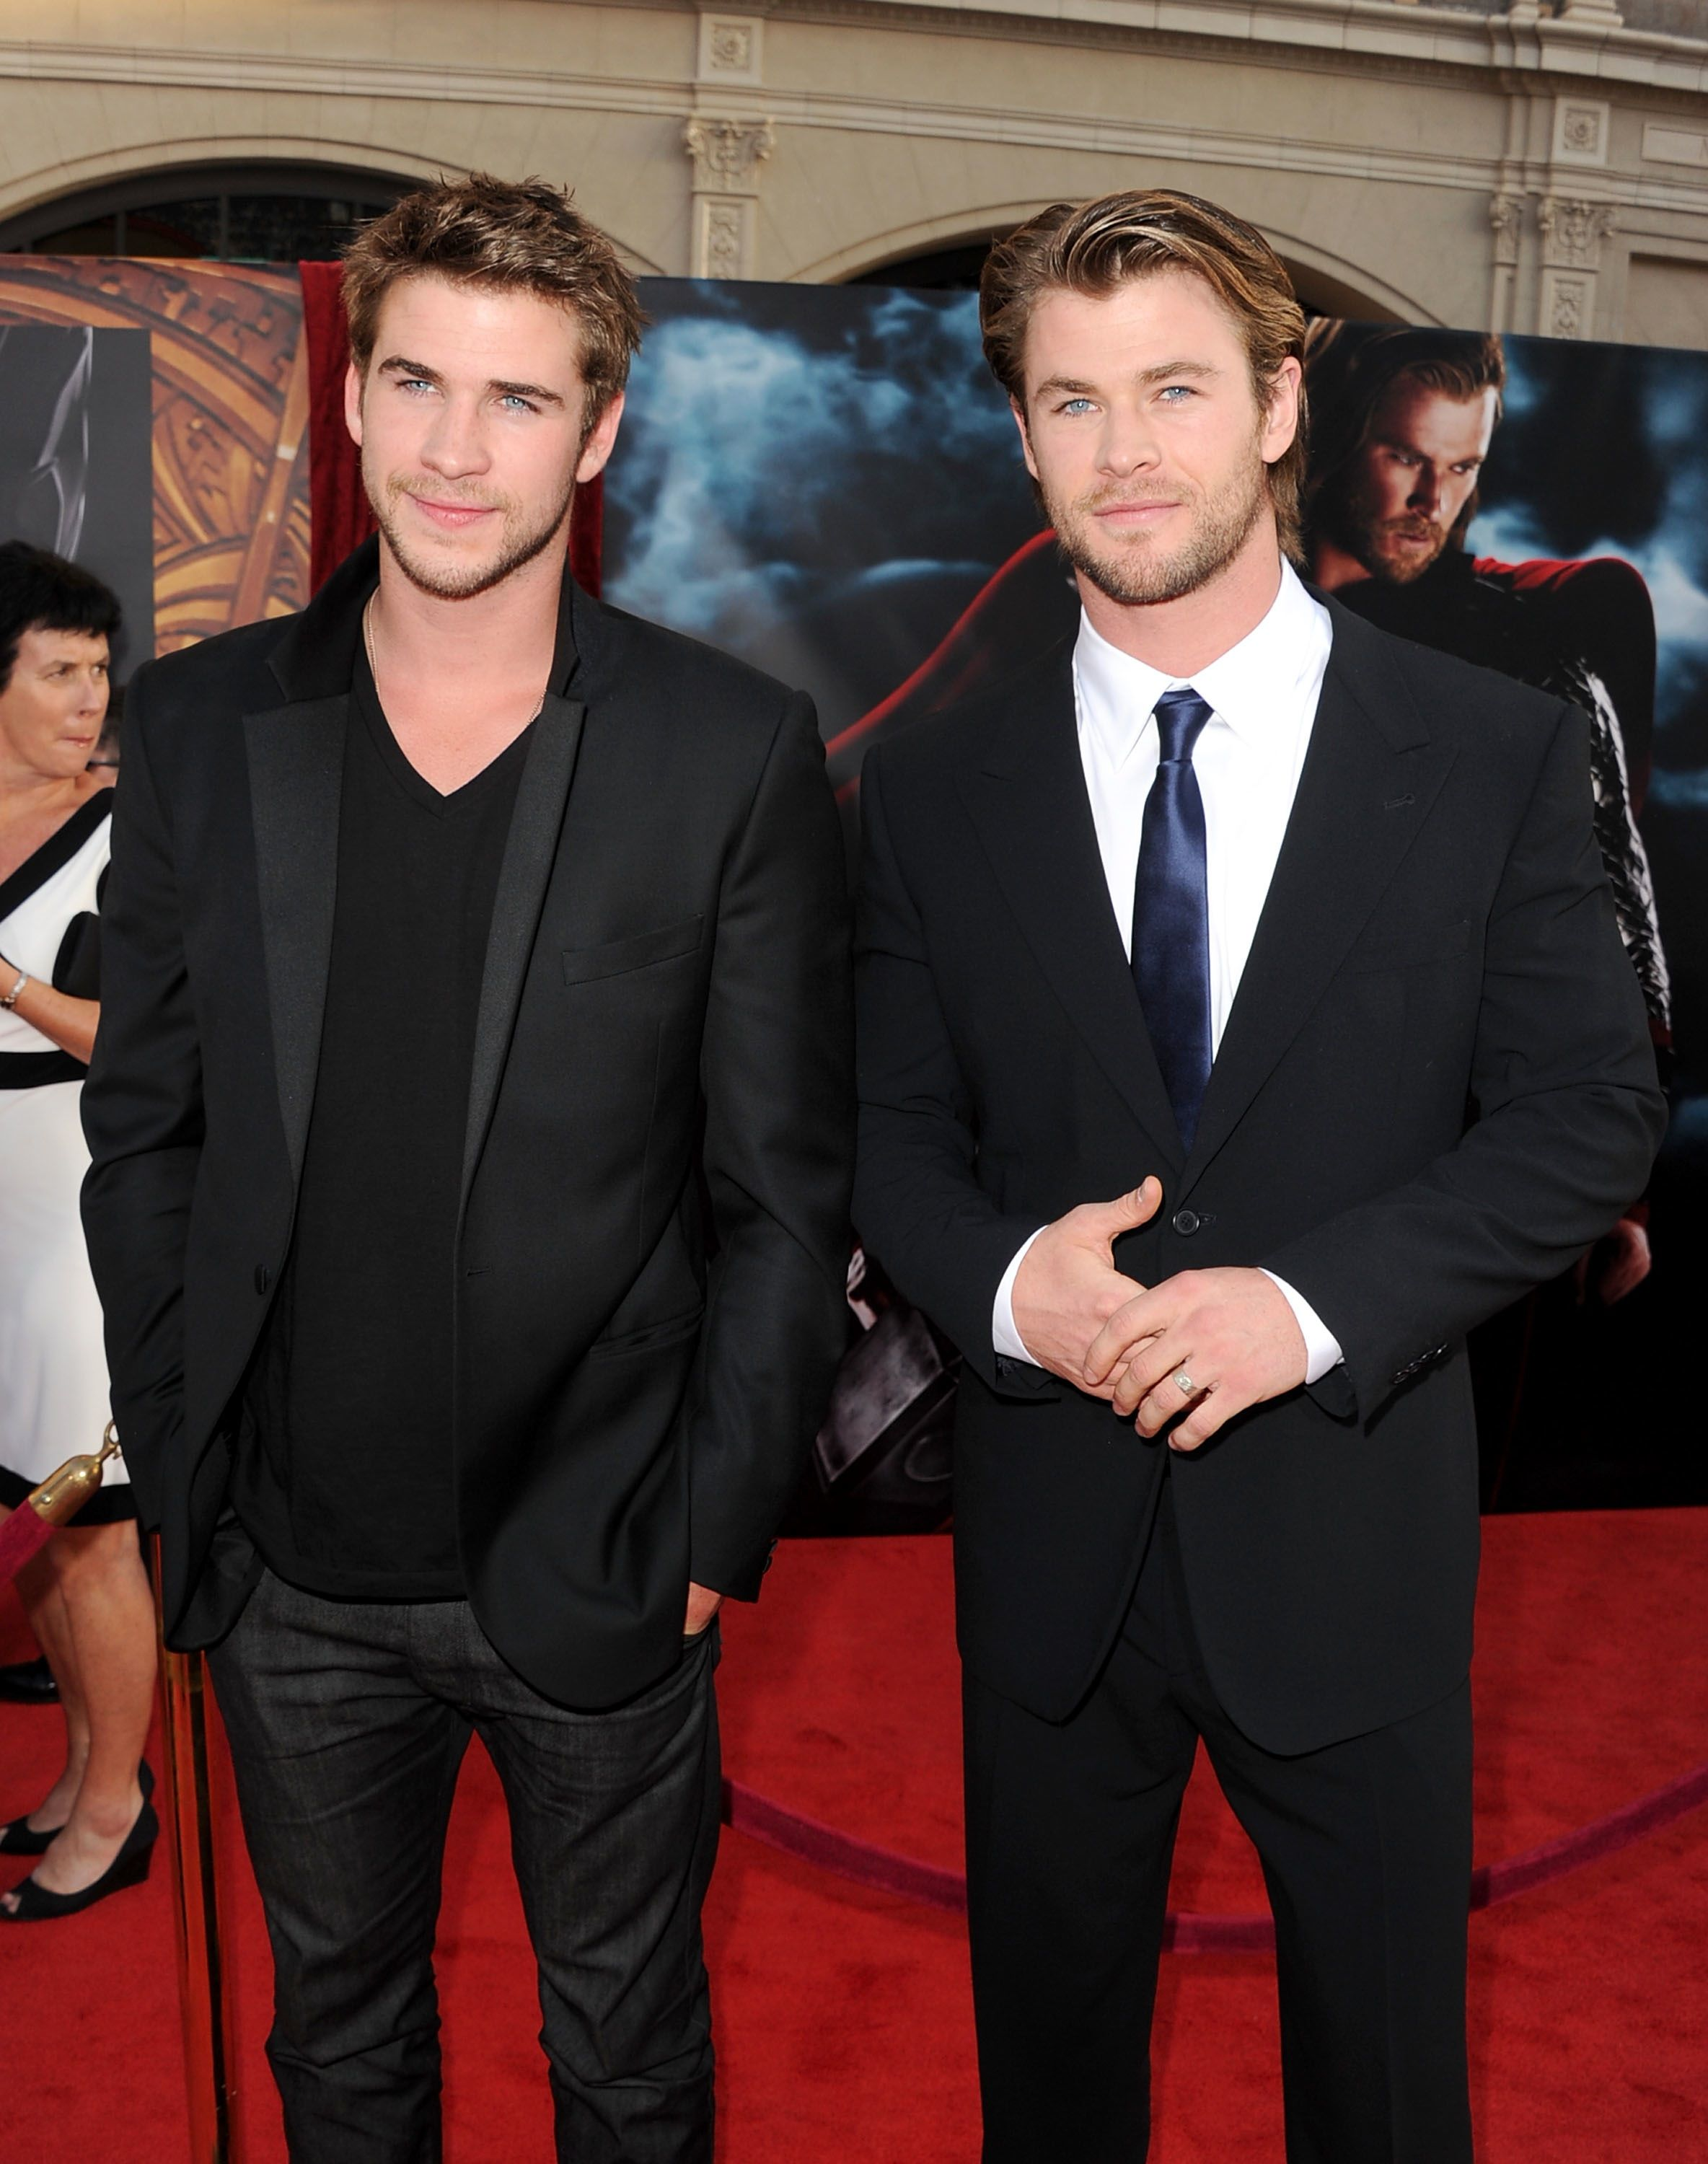 liam & chris hemsworth. I just realized yesterday that they were brothers. I feel stupid. haha.